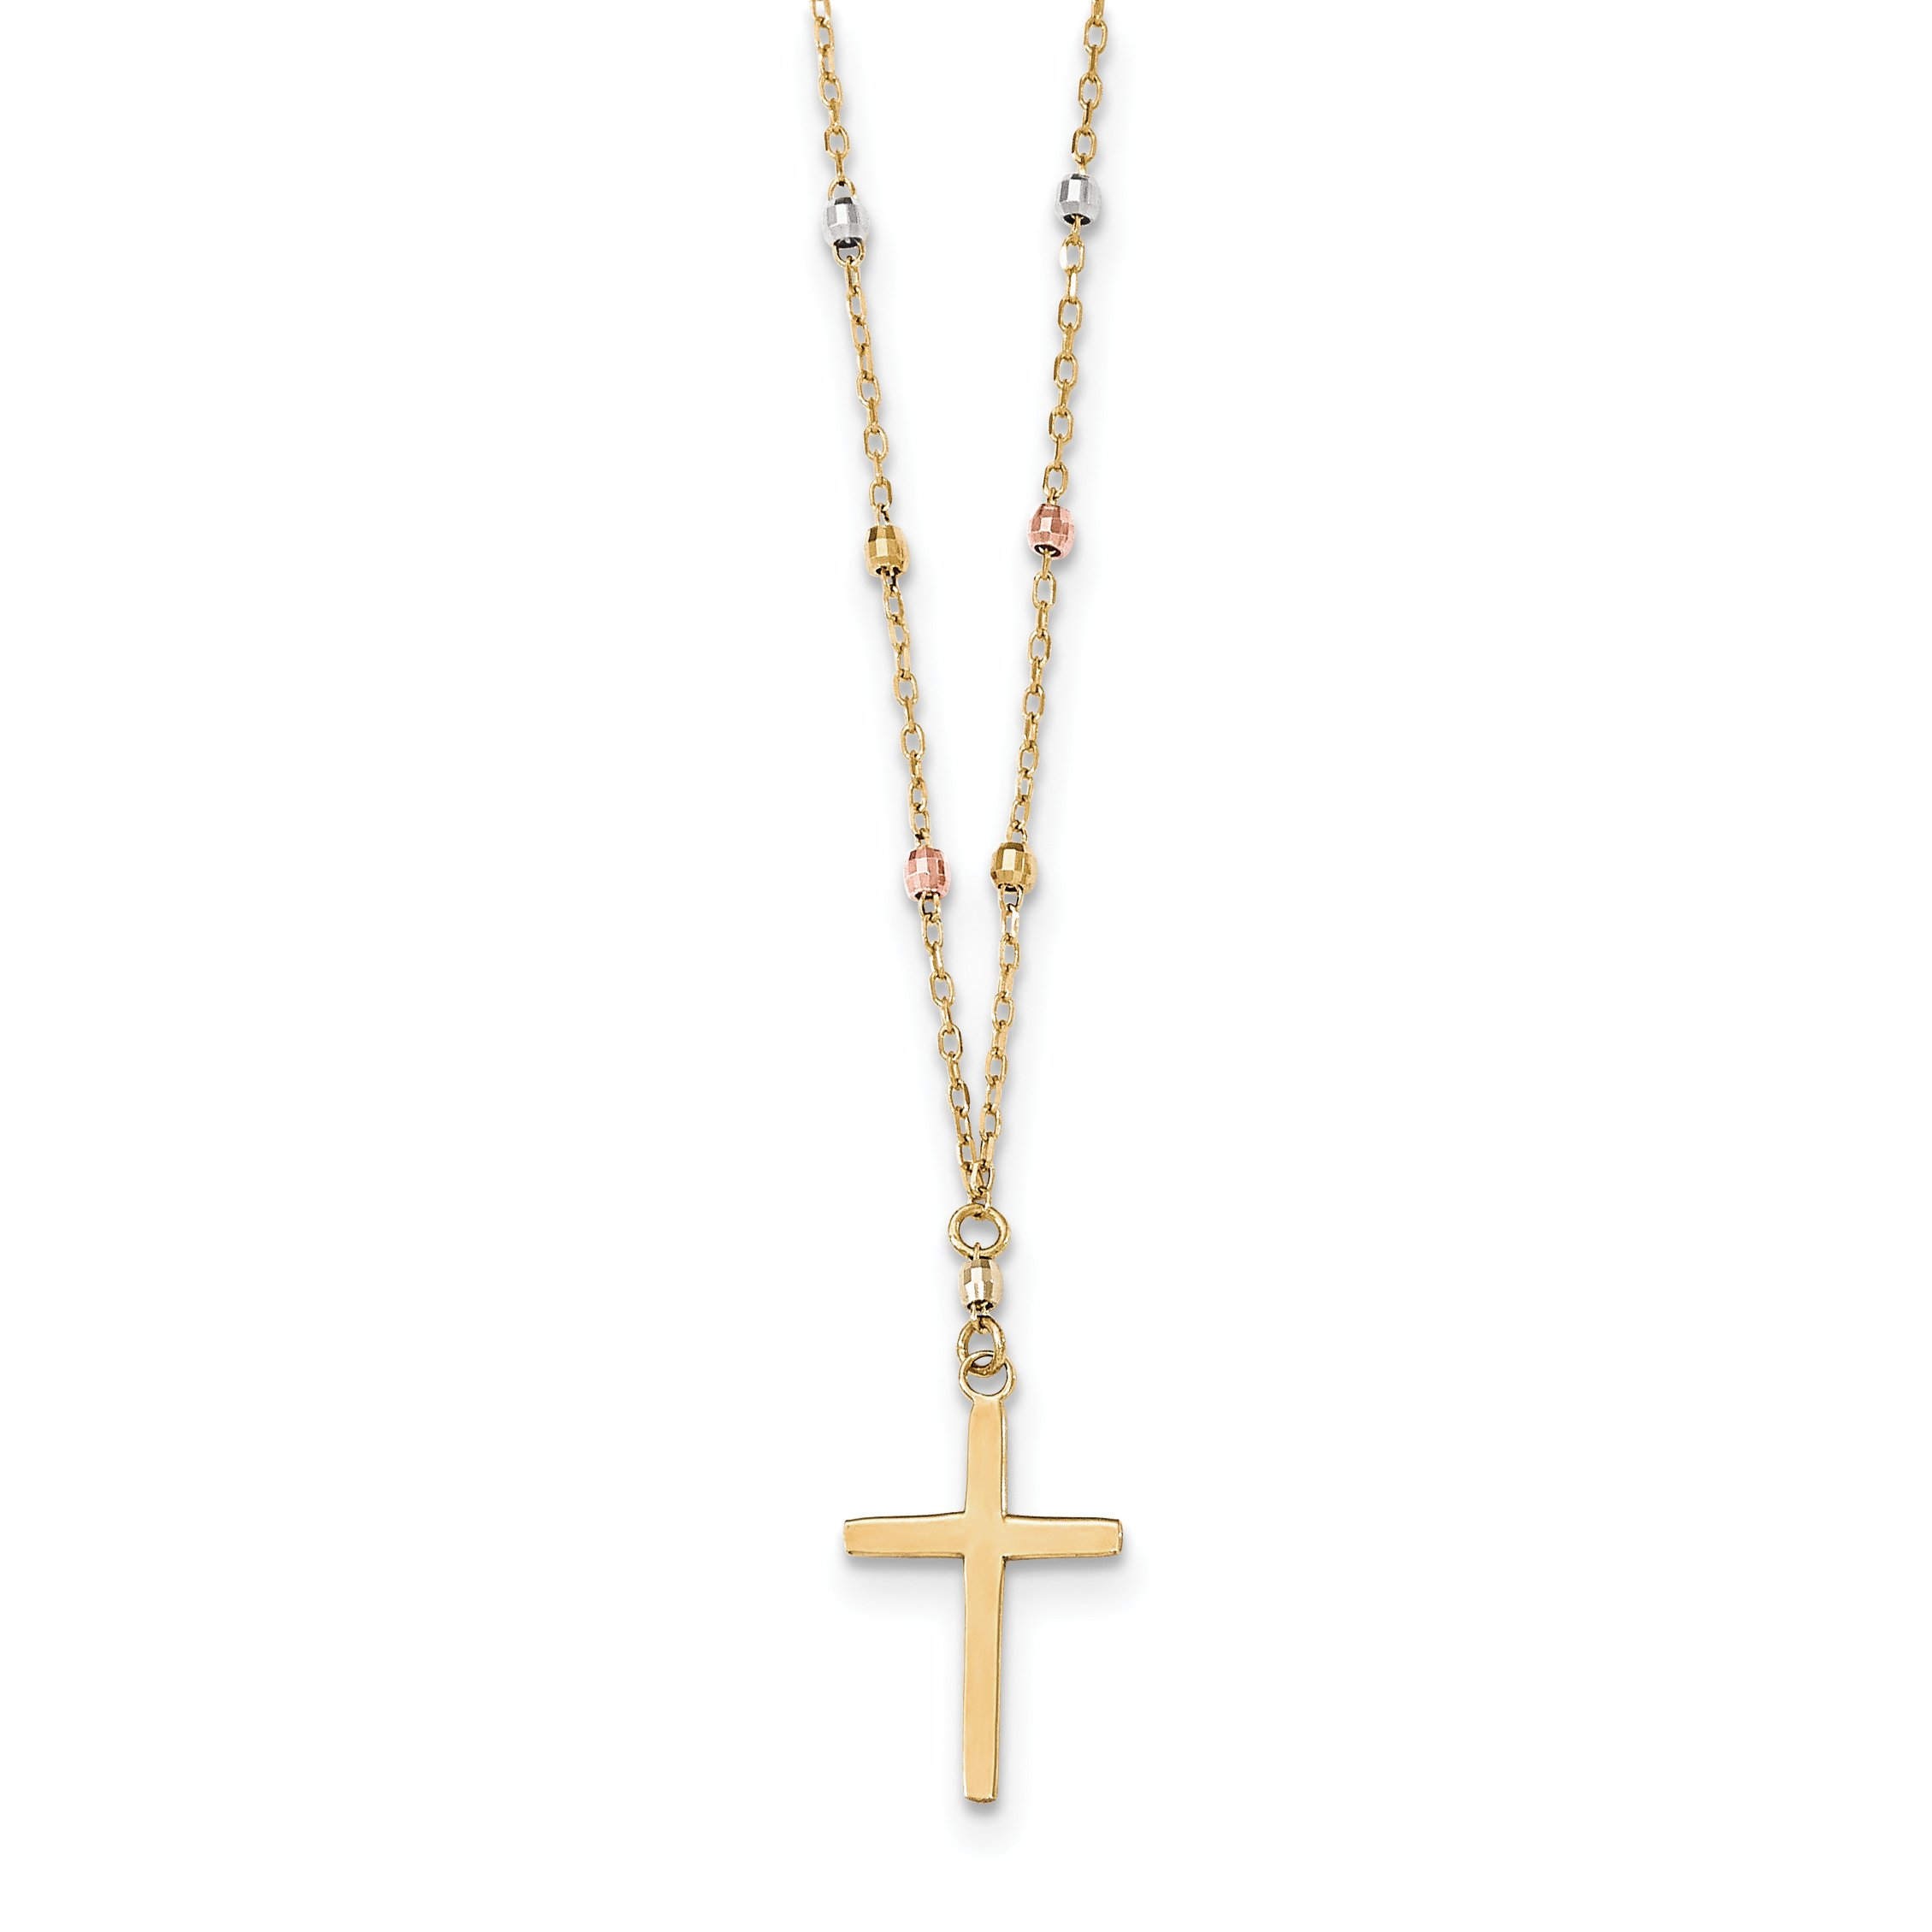 ICE CARATS 14k Tri Colored Gold Beaded Cross Religious Chain Necklace Crucifix Fine Jewelry Gift Set For Women Heart by ICE CARATS (Image #1)